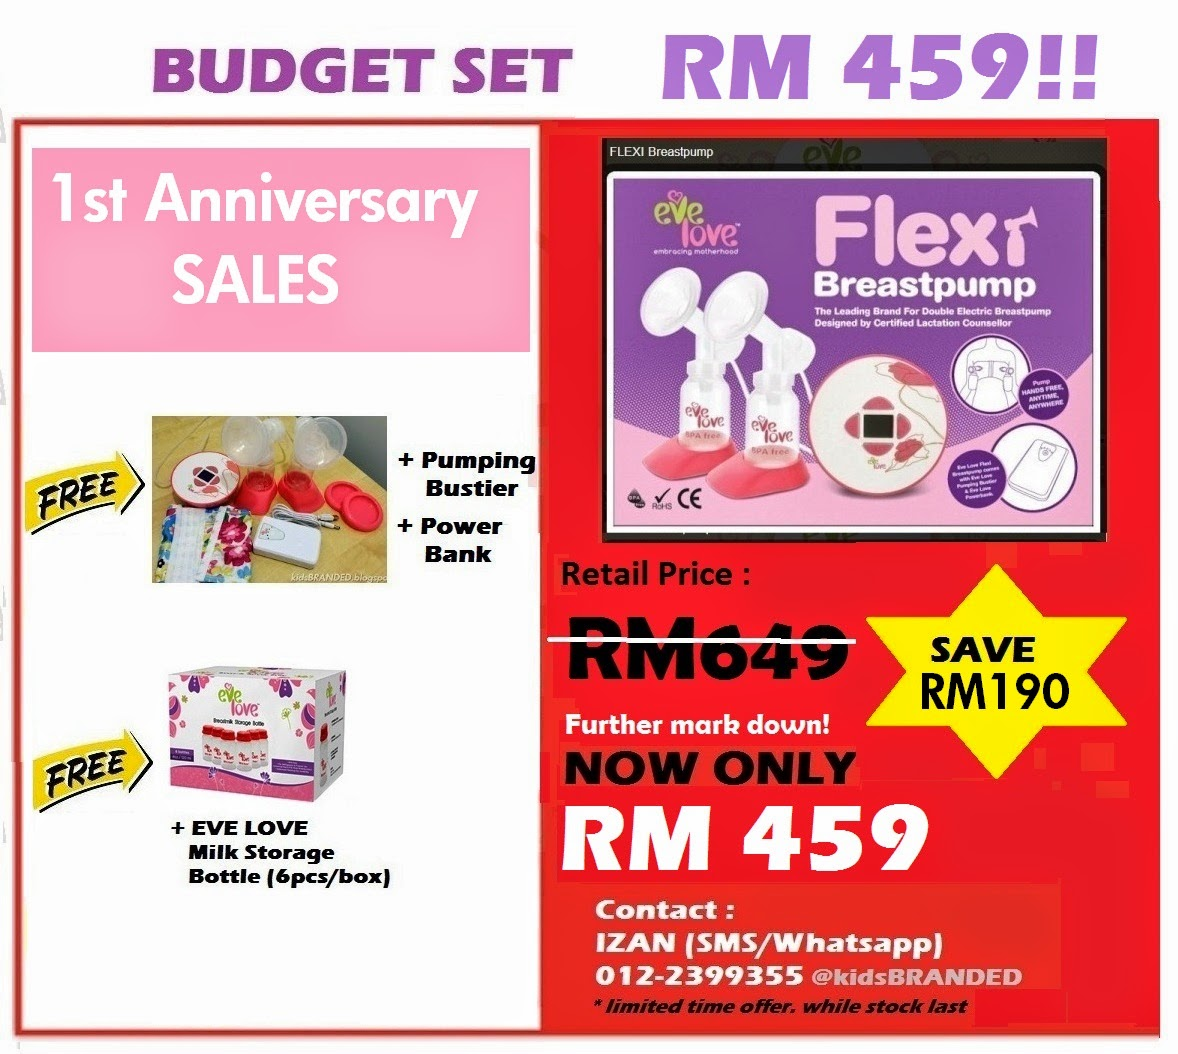 EVE LOVE FLEXI BUDGET